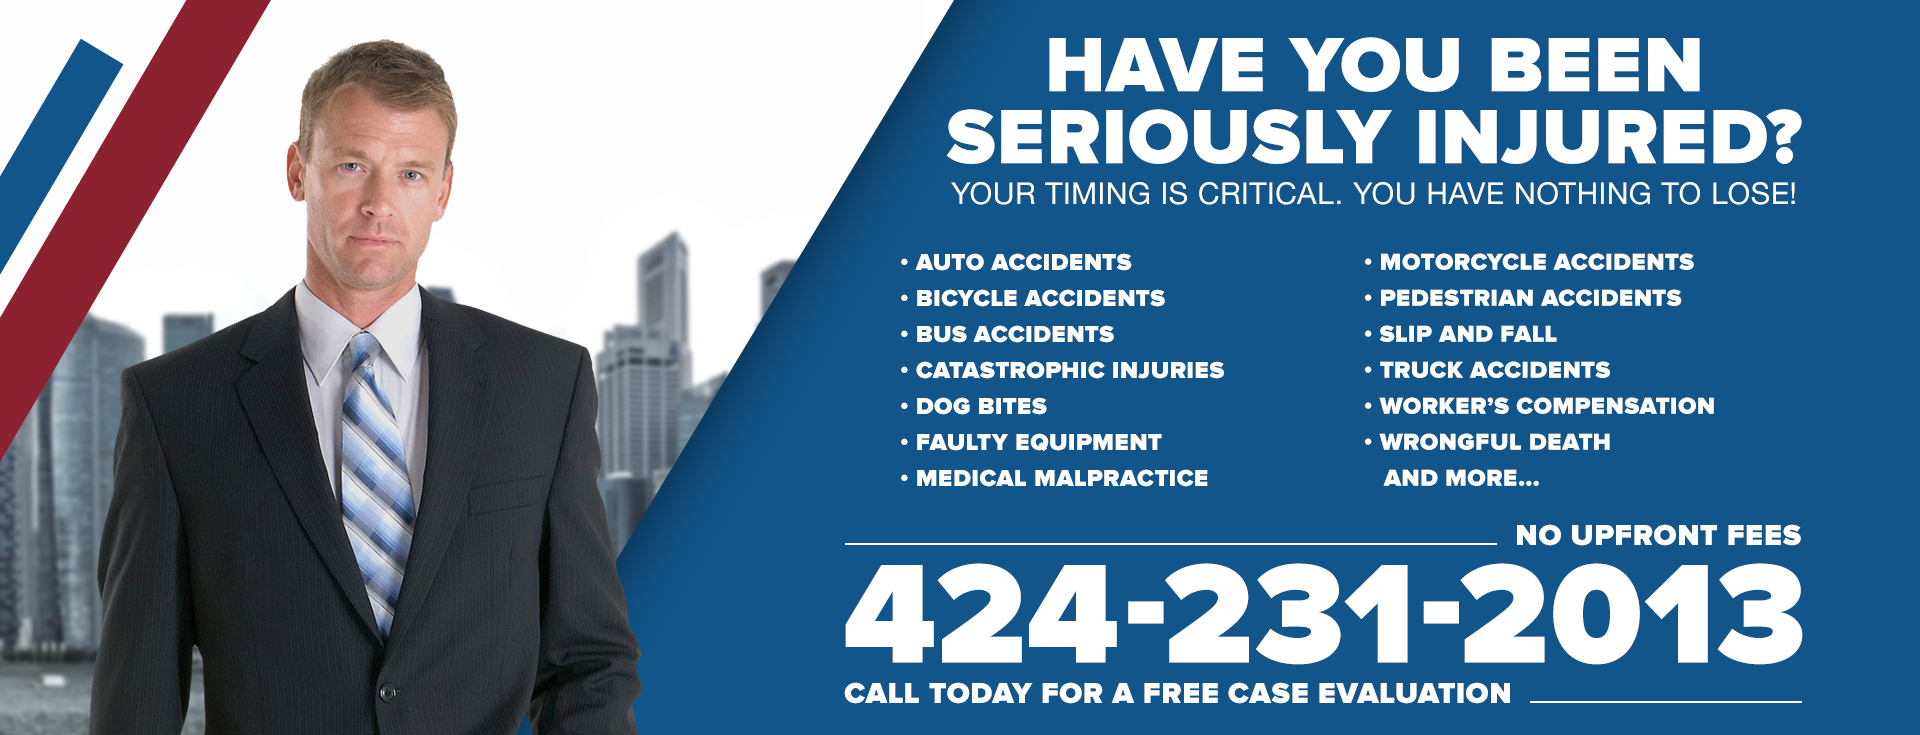 Los Angeles Personal Injury Attorney image 0